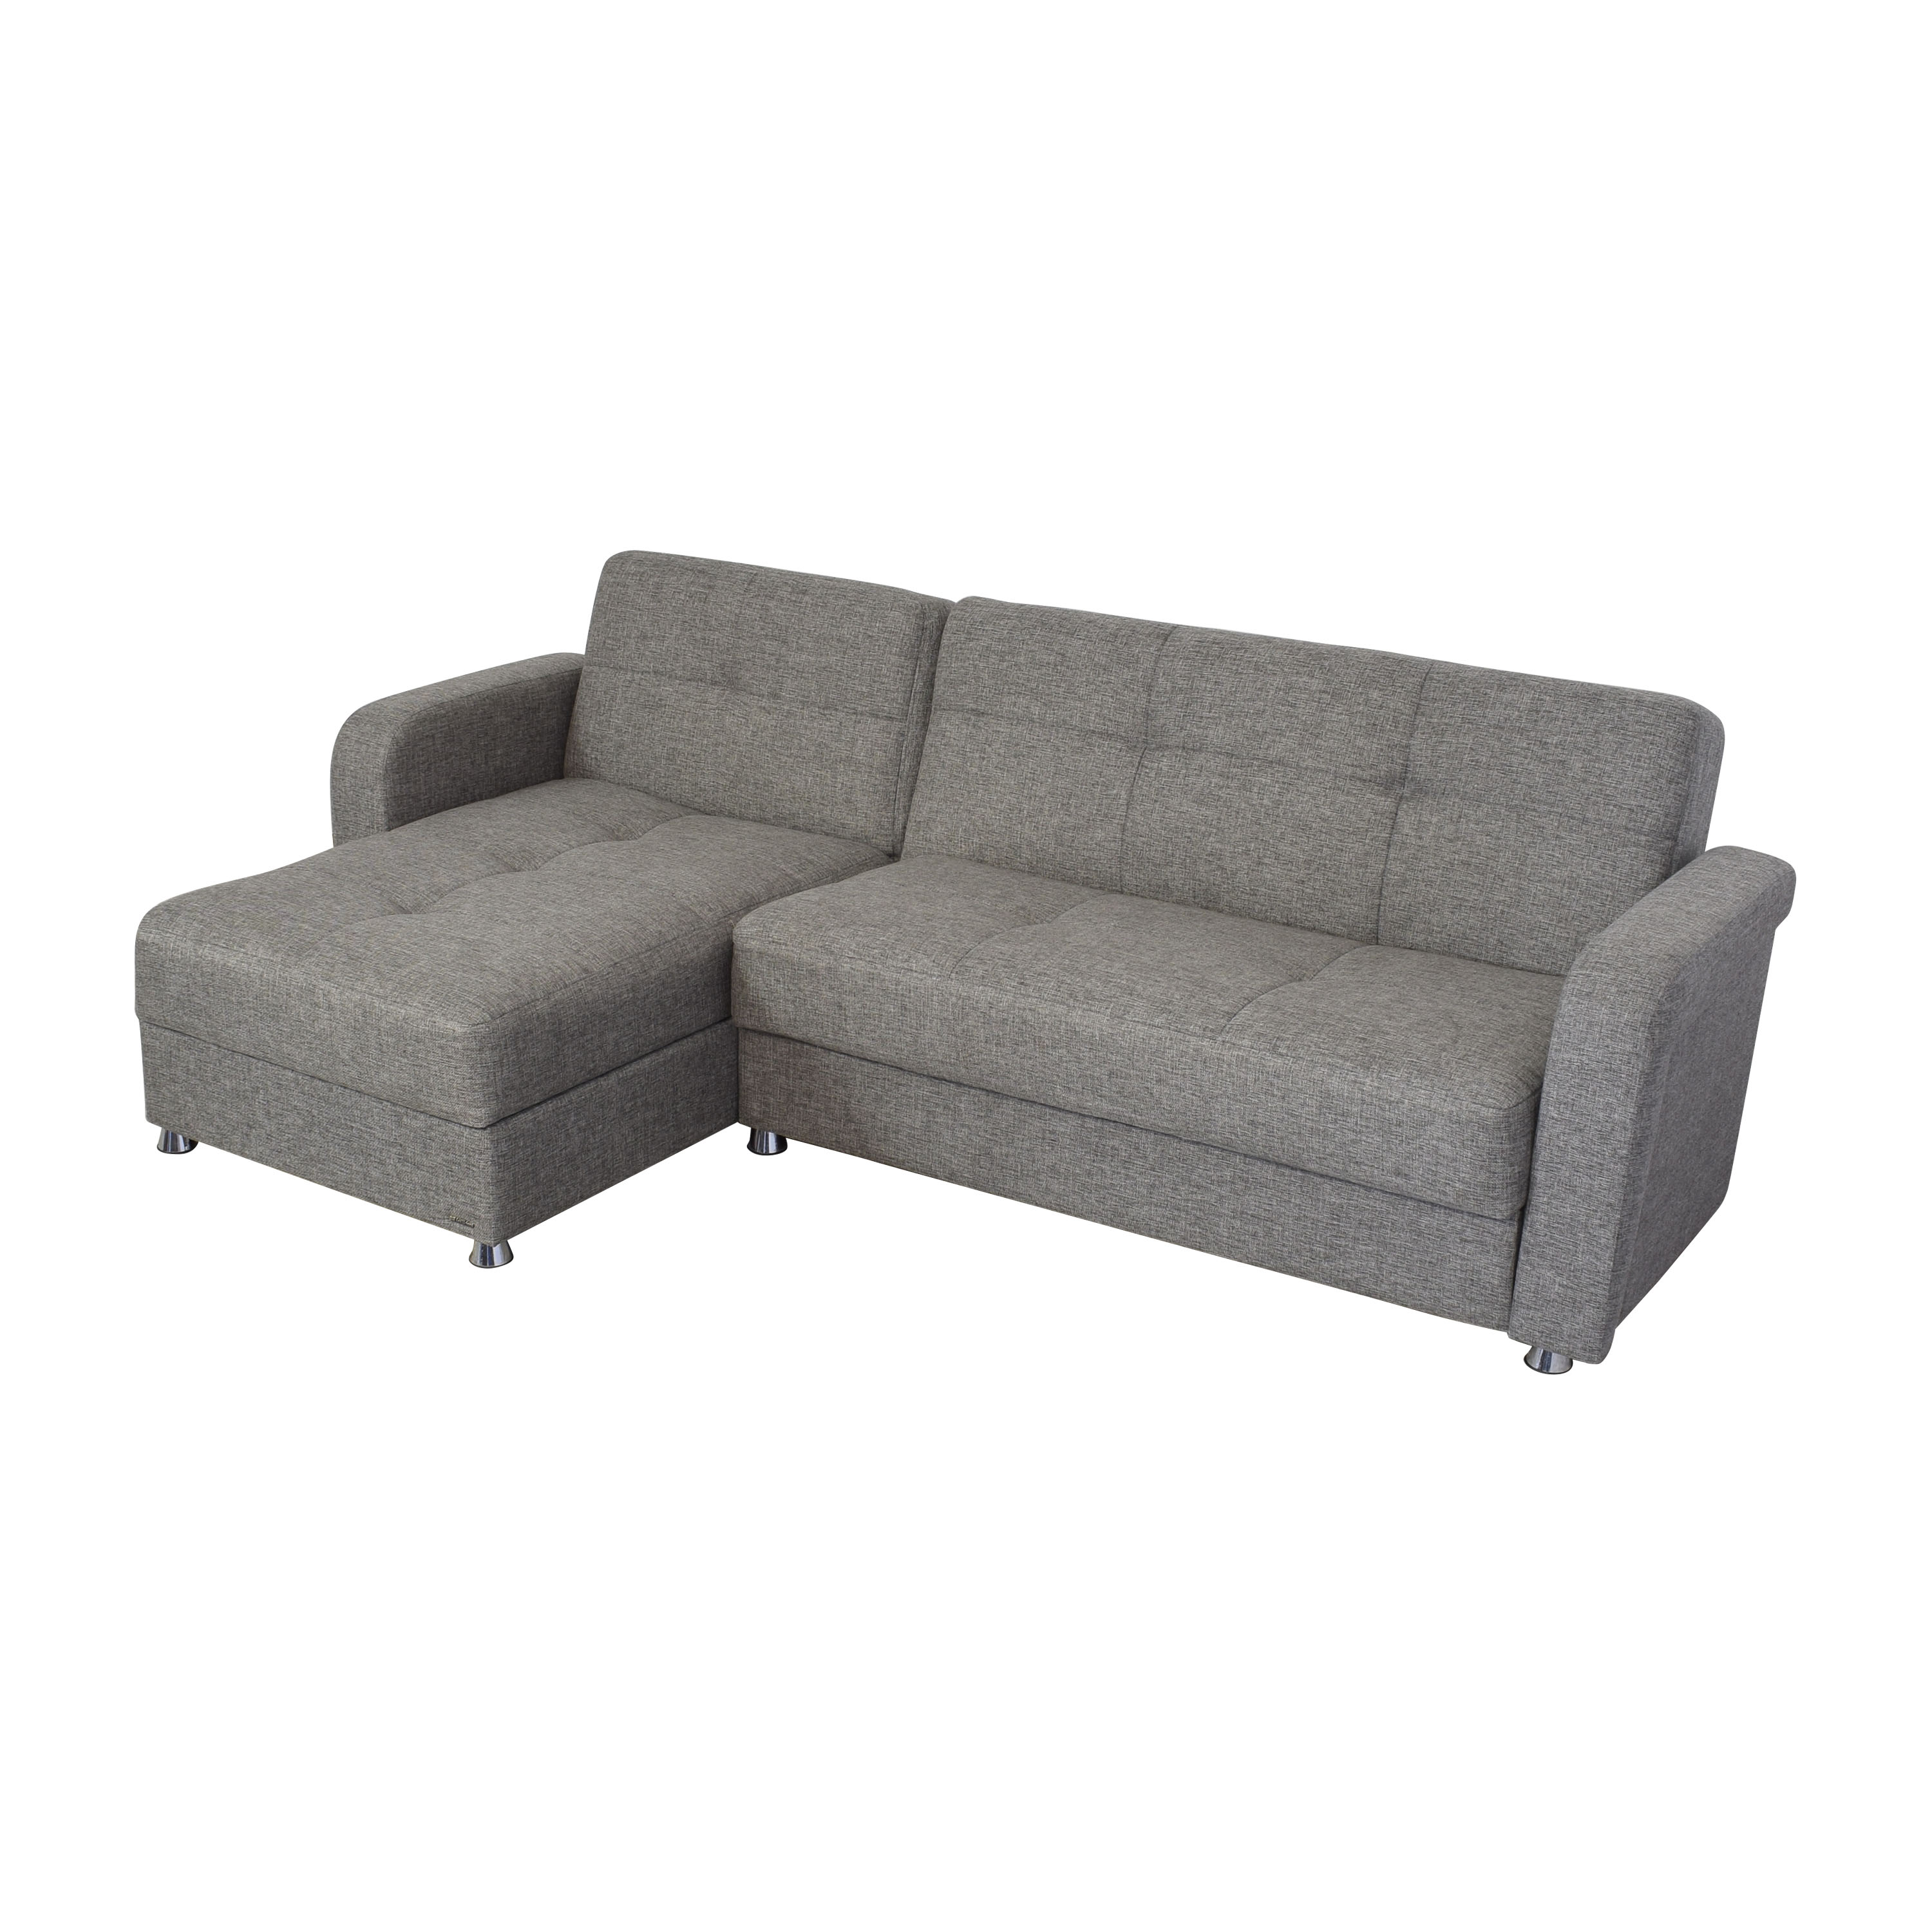 Istikbal Vision Diego Sectional Sofa and Ottoman sale